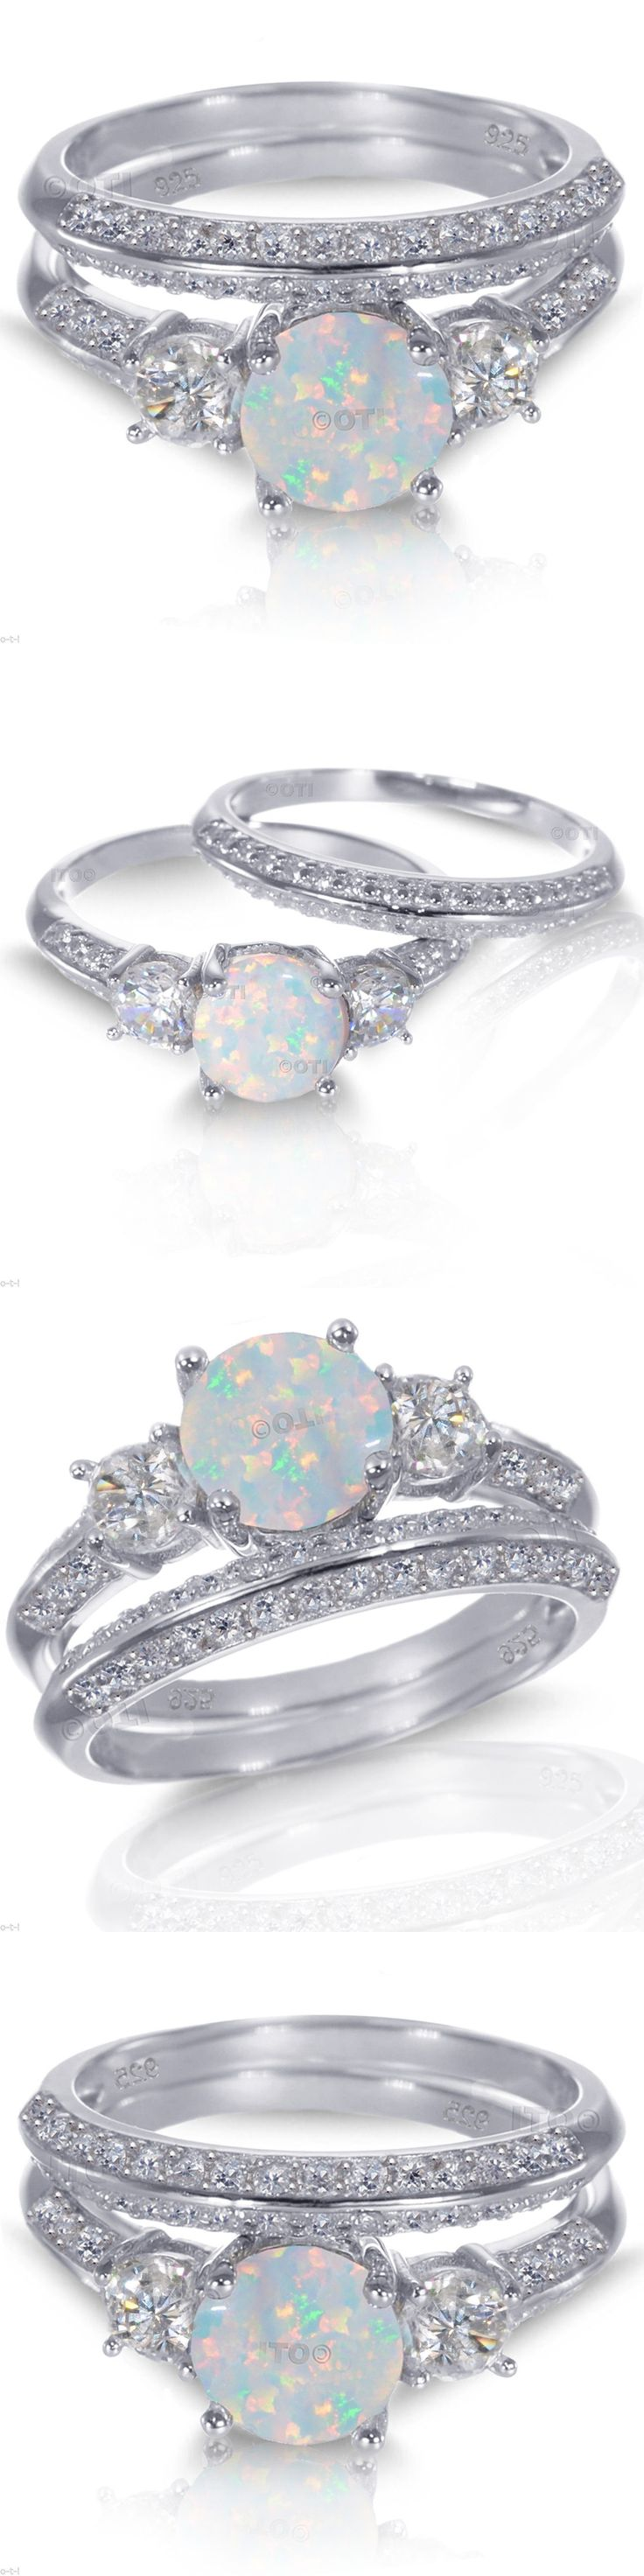 Rings 67681: White Gold Sterling Silver Round Cut White Fire Opal Wedding Engagement Ring Set BUY IT NOW ONLY: $62.95